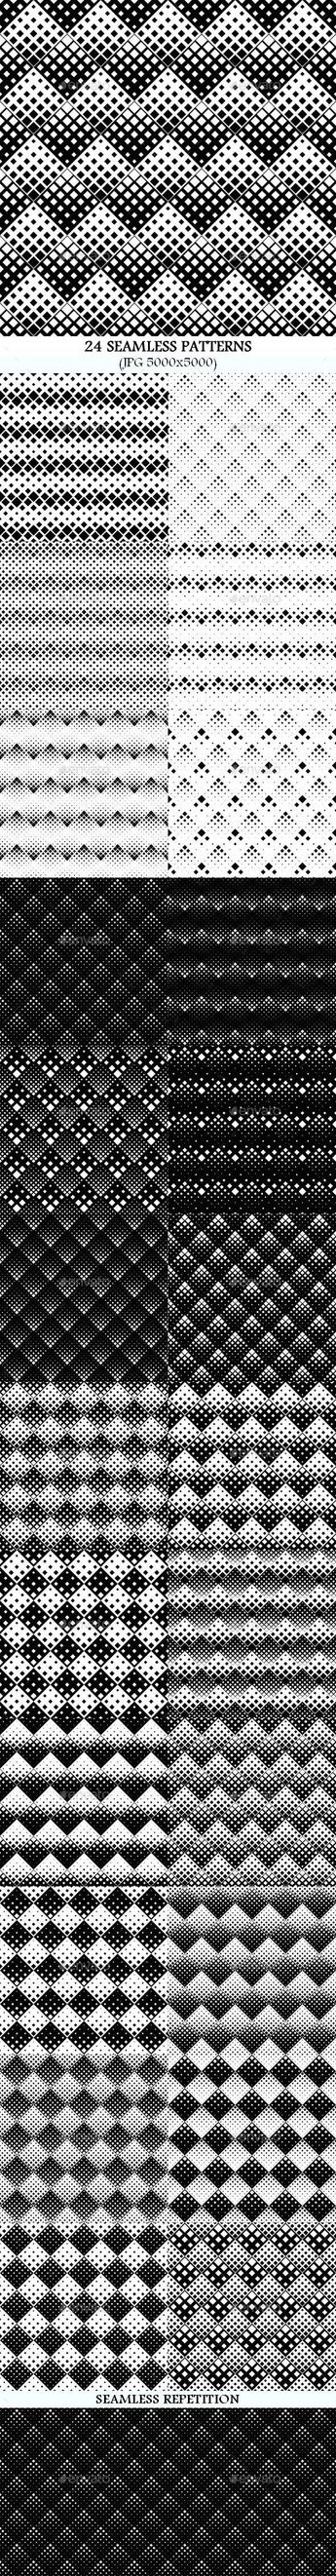 24 Seamless Square Patterns. Professionally designed pattern background. #background #design #DigitalArt #pattern #abstract #AbstractBackground #BlackAndWhite #collection #diagonal #geometry #halftone #monochrome #motif #patterns #repeating #seamless #SeamlessPattern #set #square #SquarePattern #squares #wallpaper